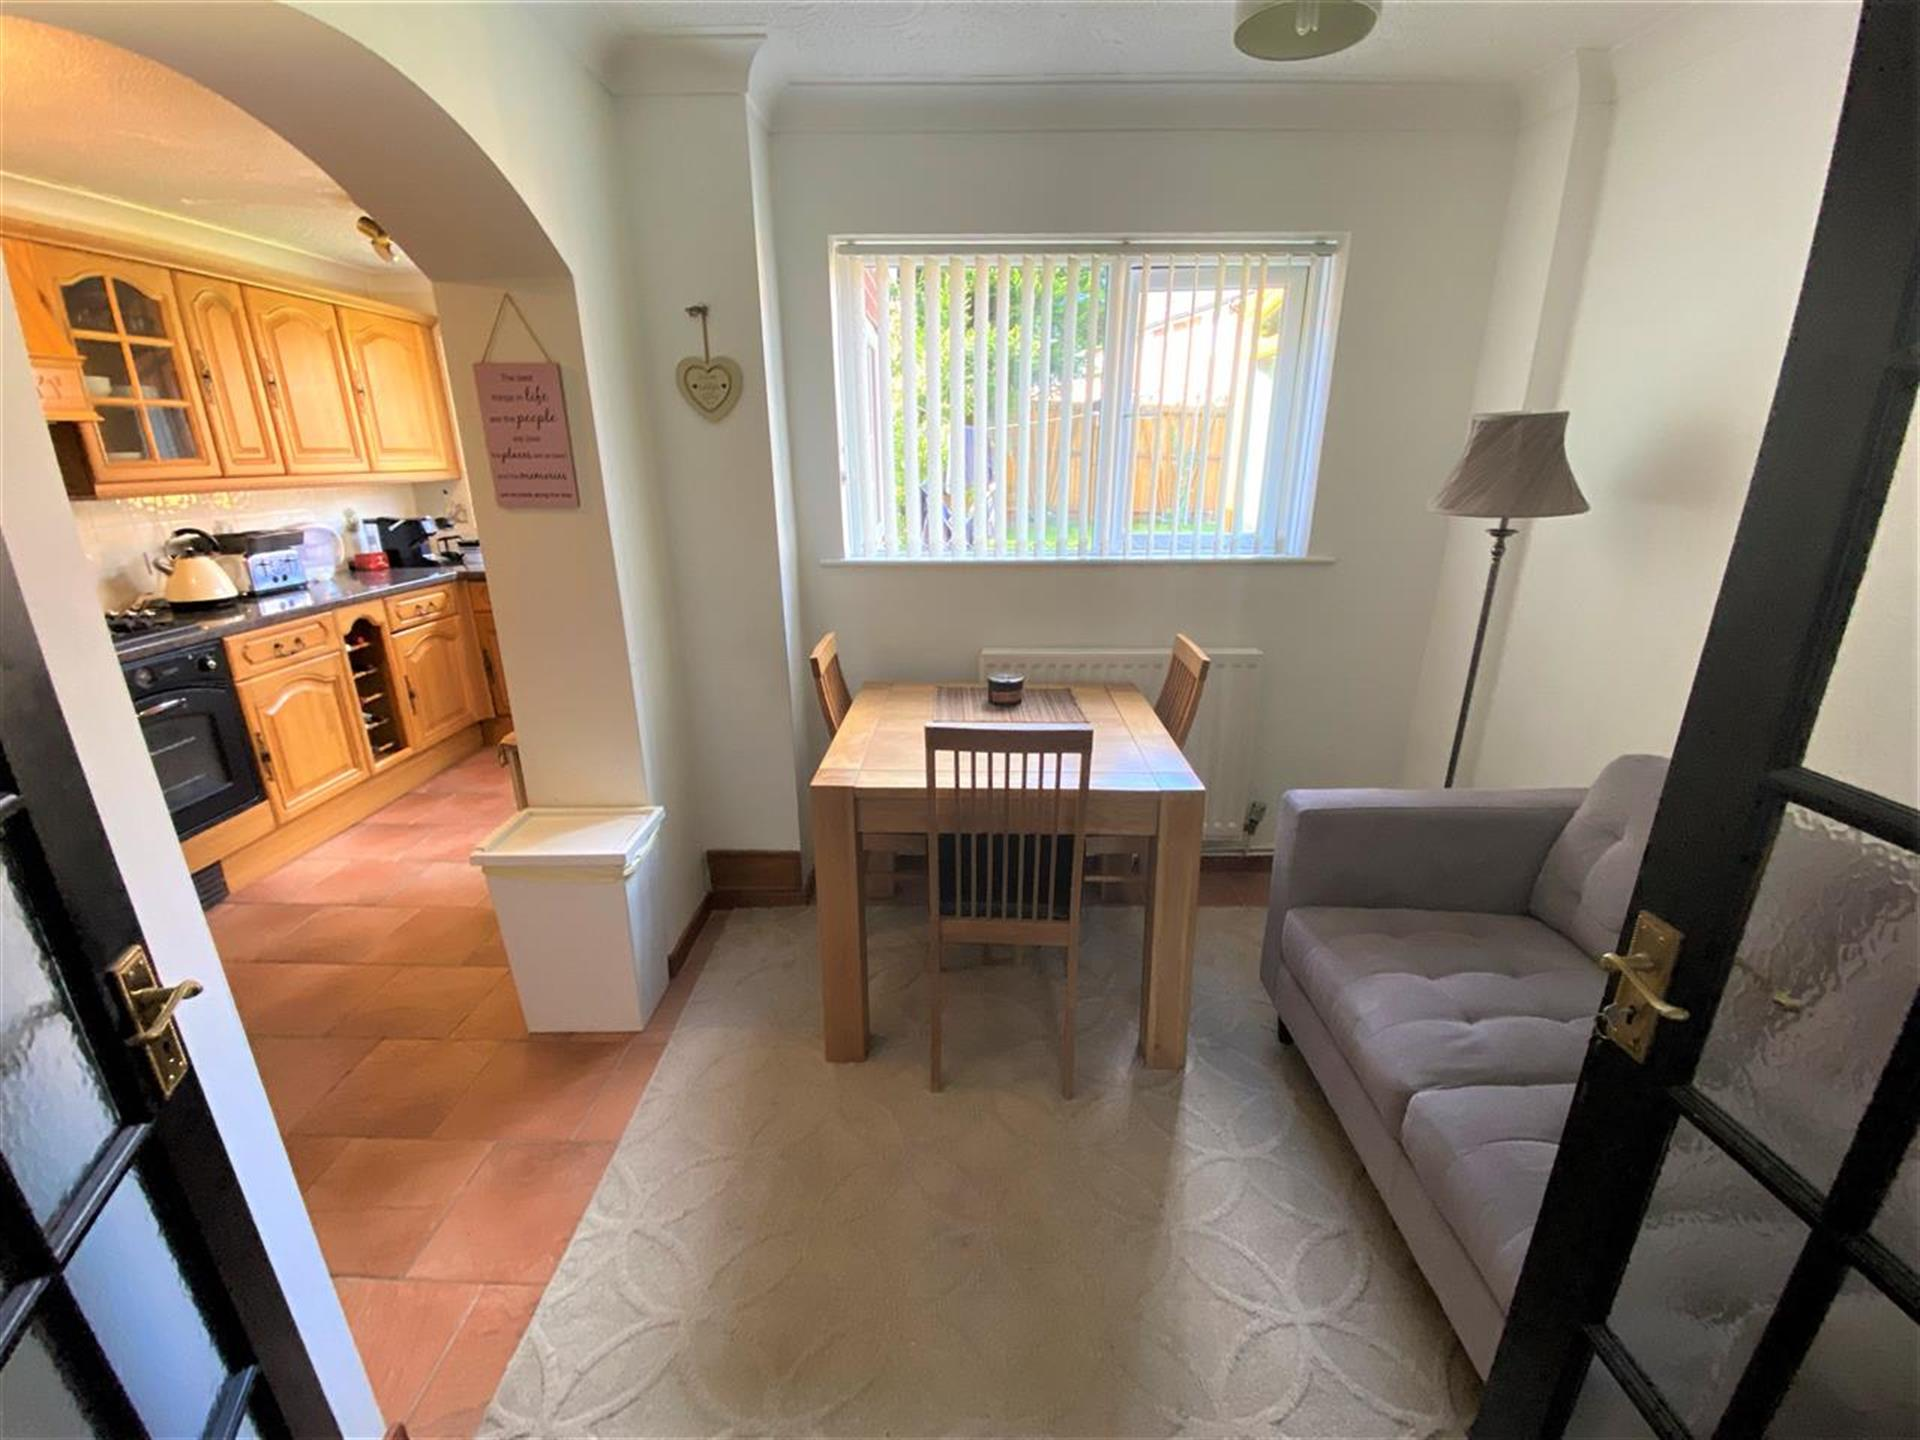 2 Bedroom Semi-detached House For Sale - Dining Area